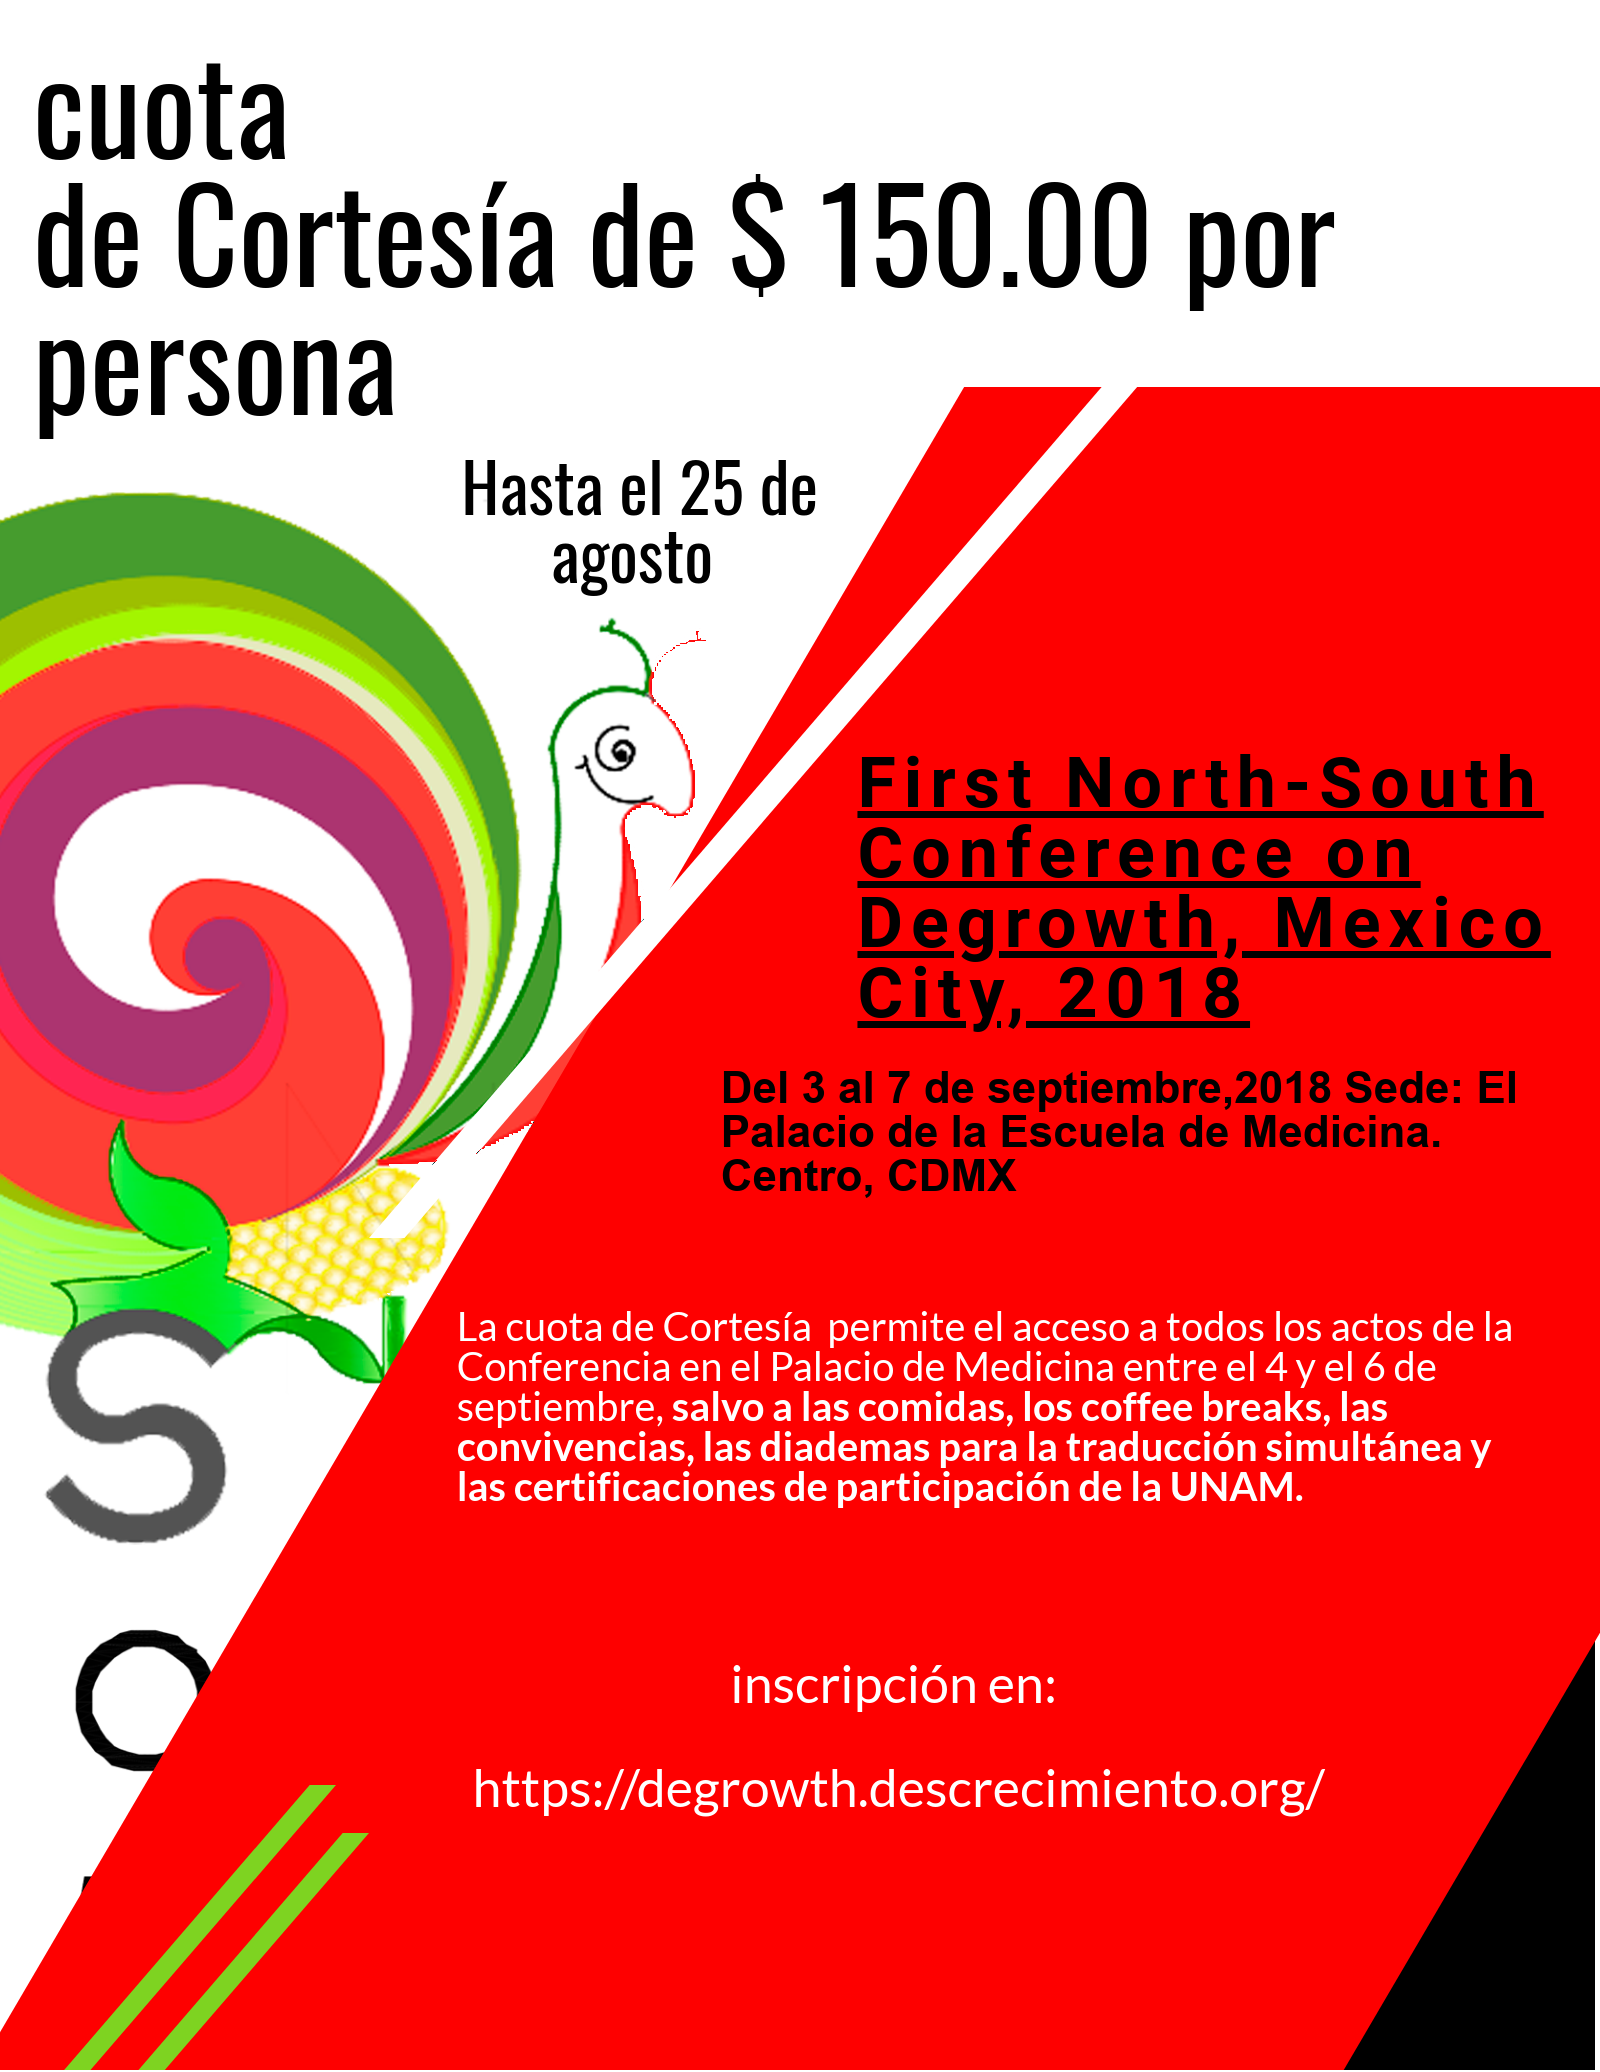 1st North South Conference On Degrowth Descrecimiento Mexico 2018